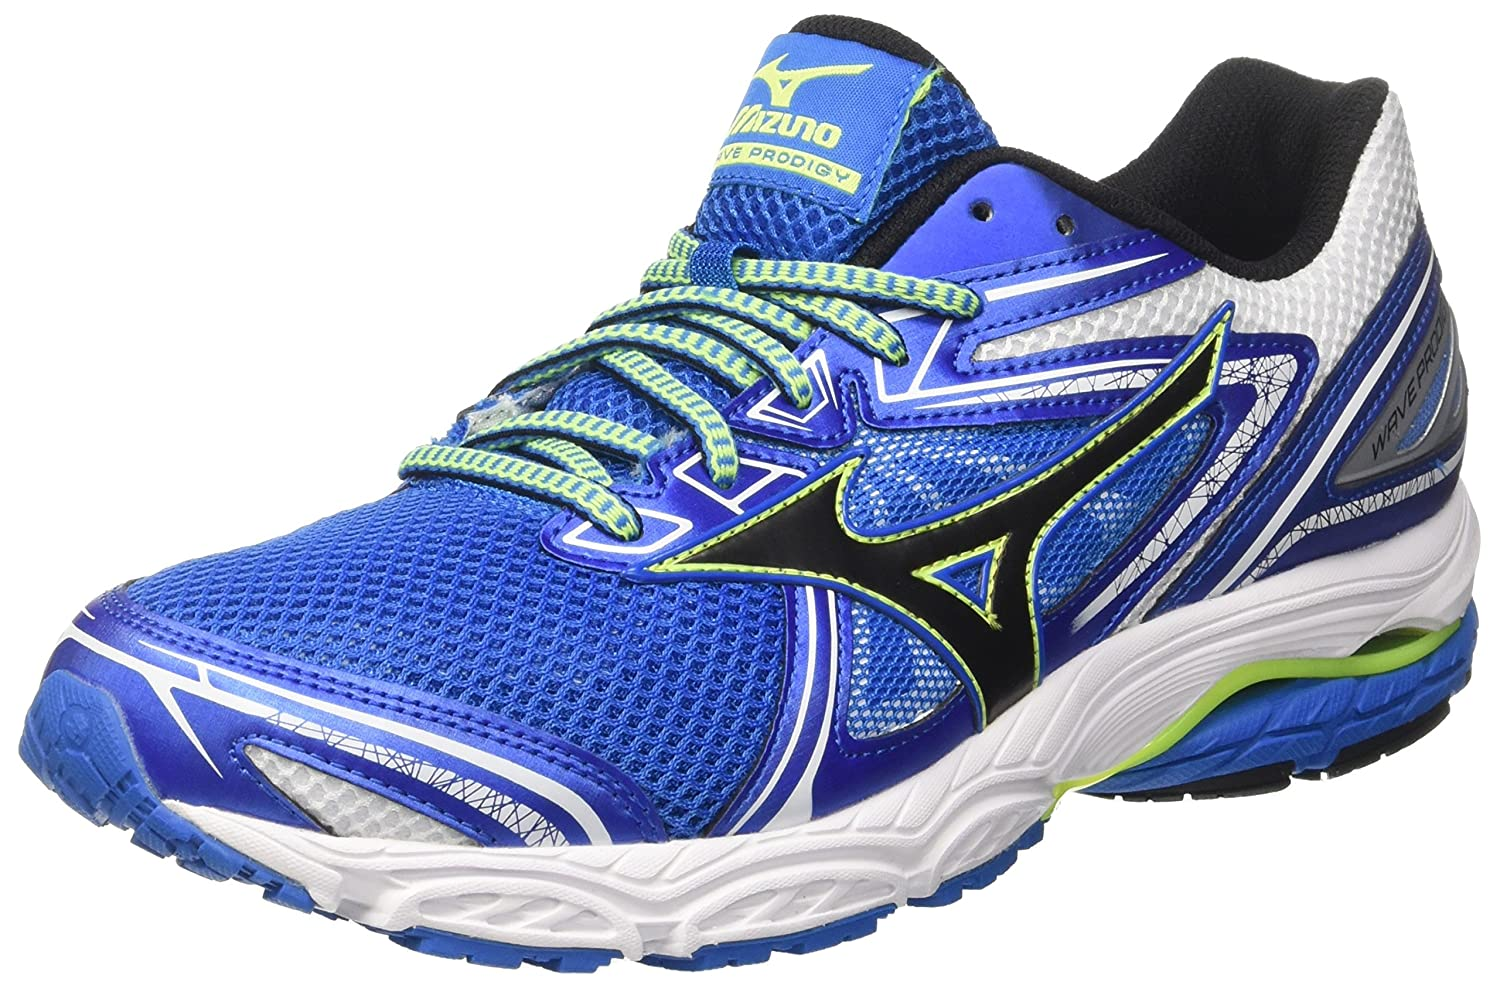 Mizuno Chaussures Wave Prodigy Prodigy Wave 40.5 EU|Multicolore (Directoireblue/Black/Safetyyellow) aa5a41